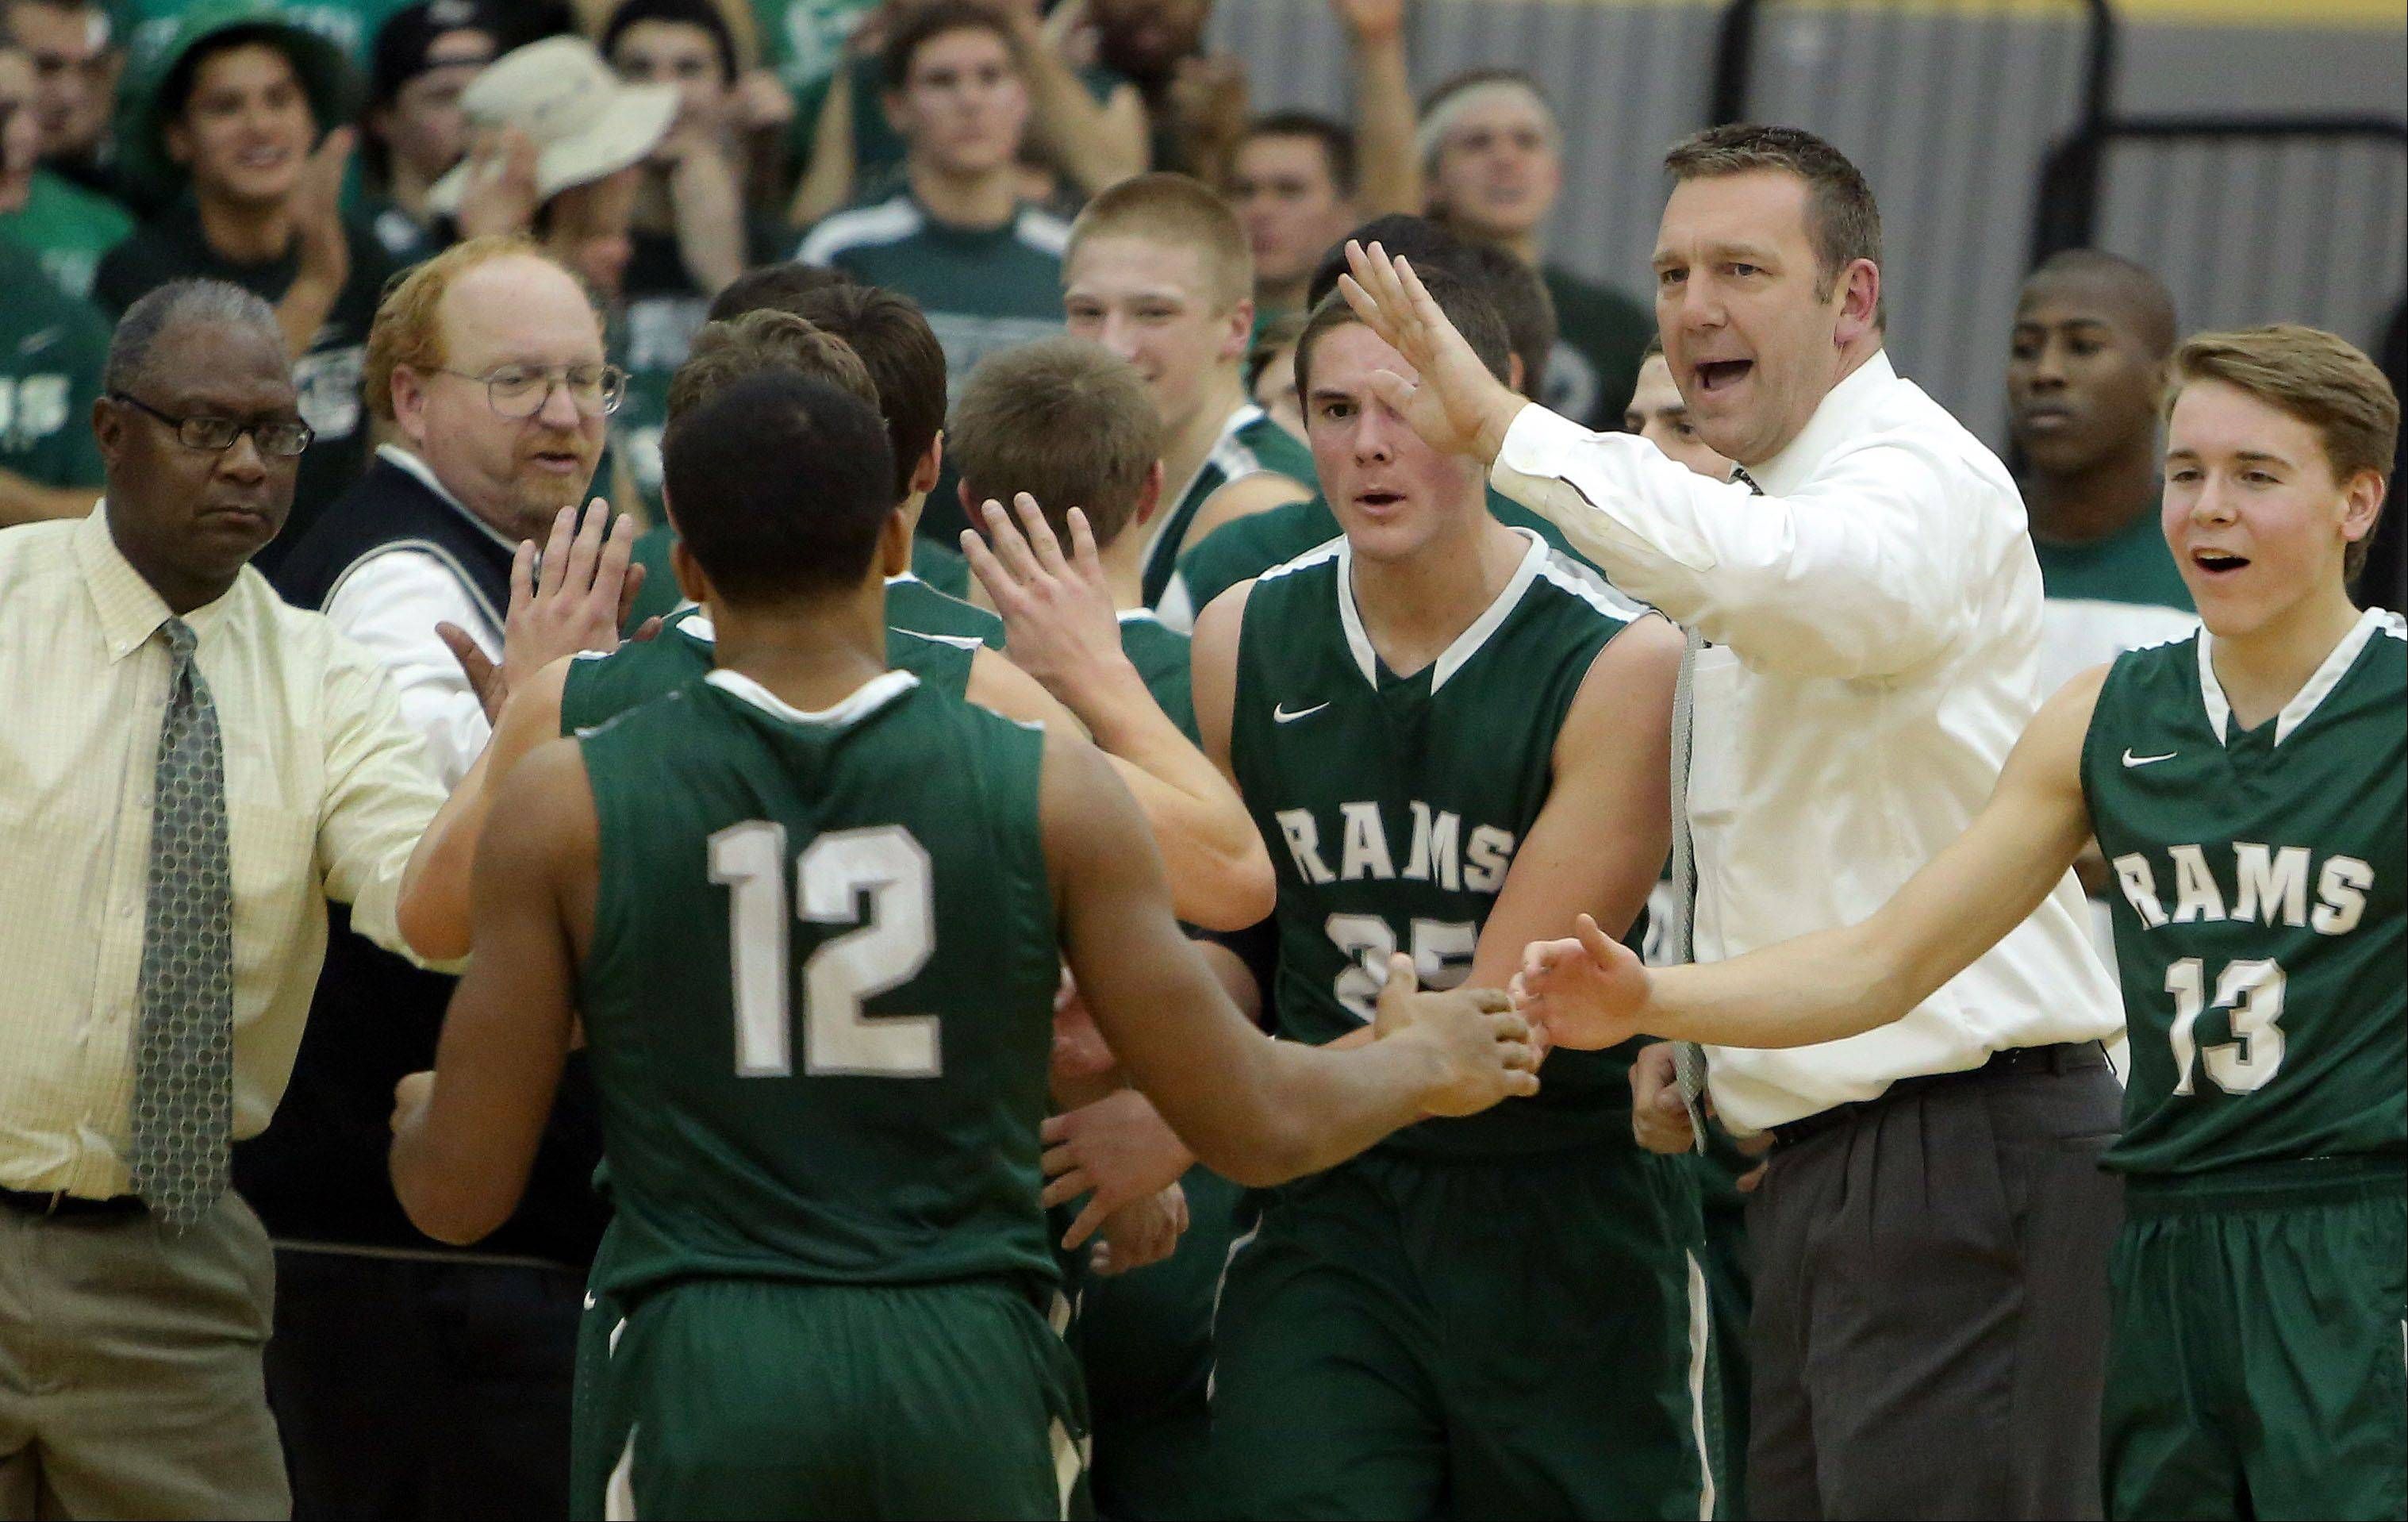 Grayslake Central�s head coach Brian Moe, right, encourages his team.